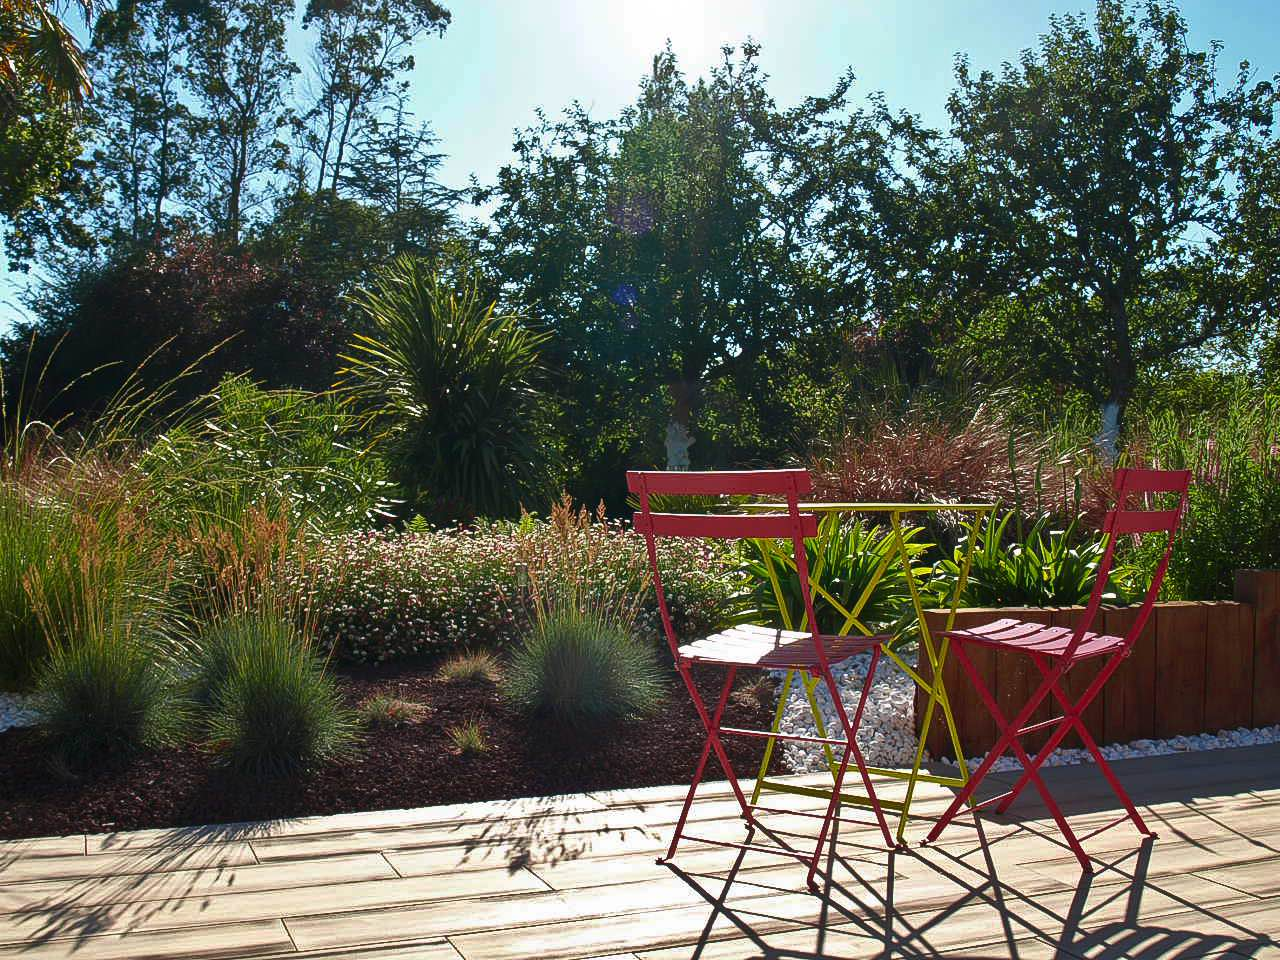 Jardin paysager contemporain minimum d 39 entretien for Jardin contemporain epure